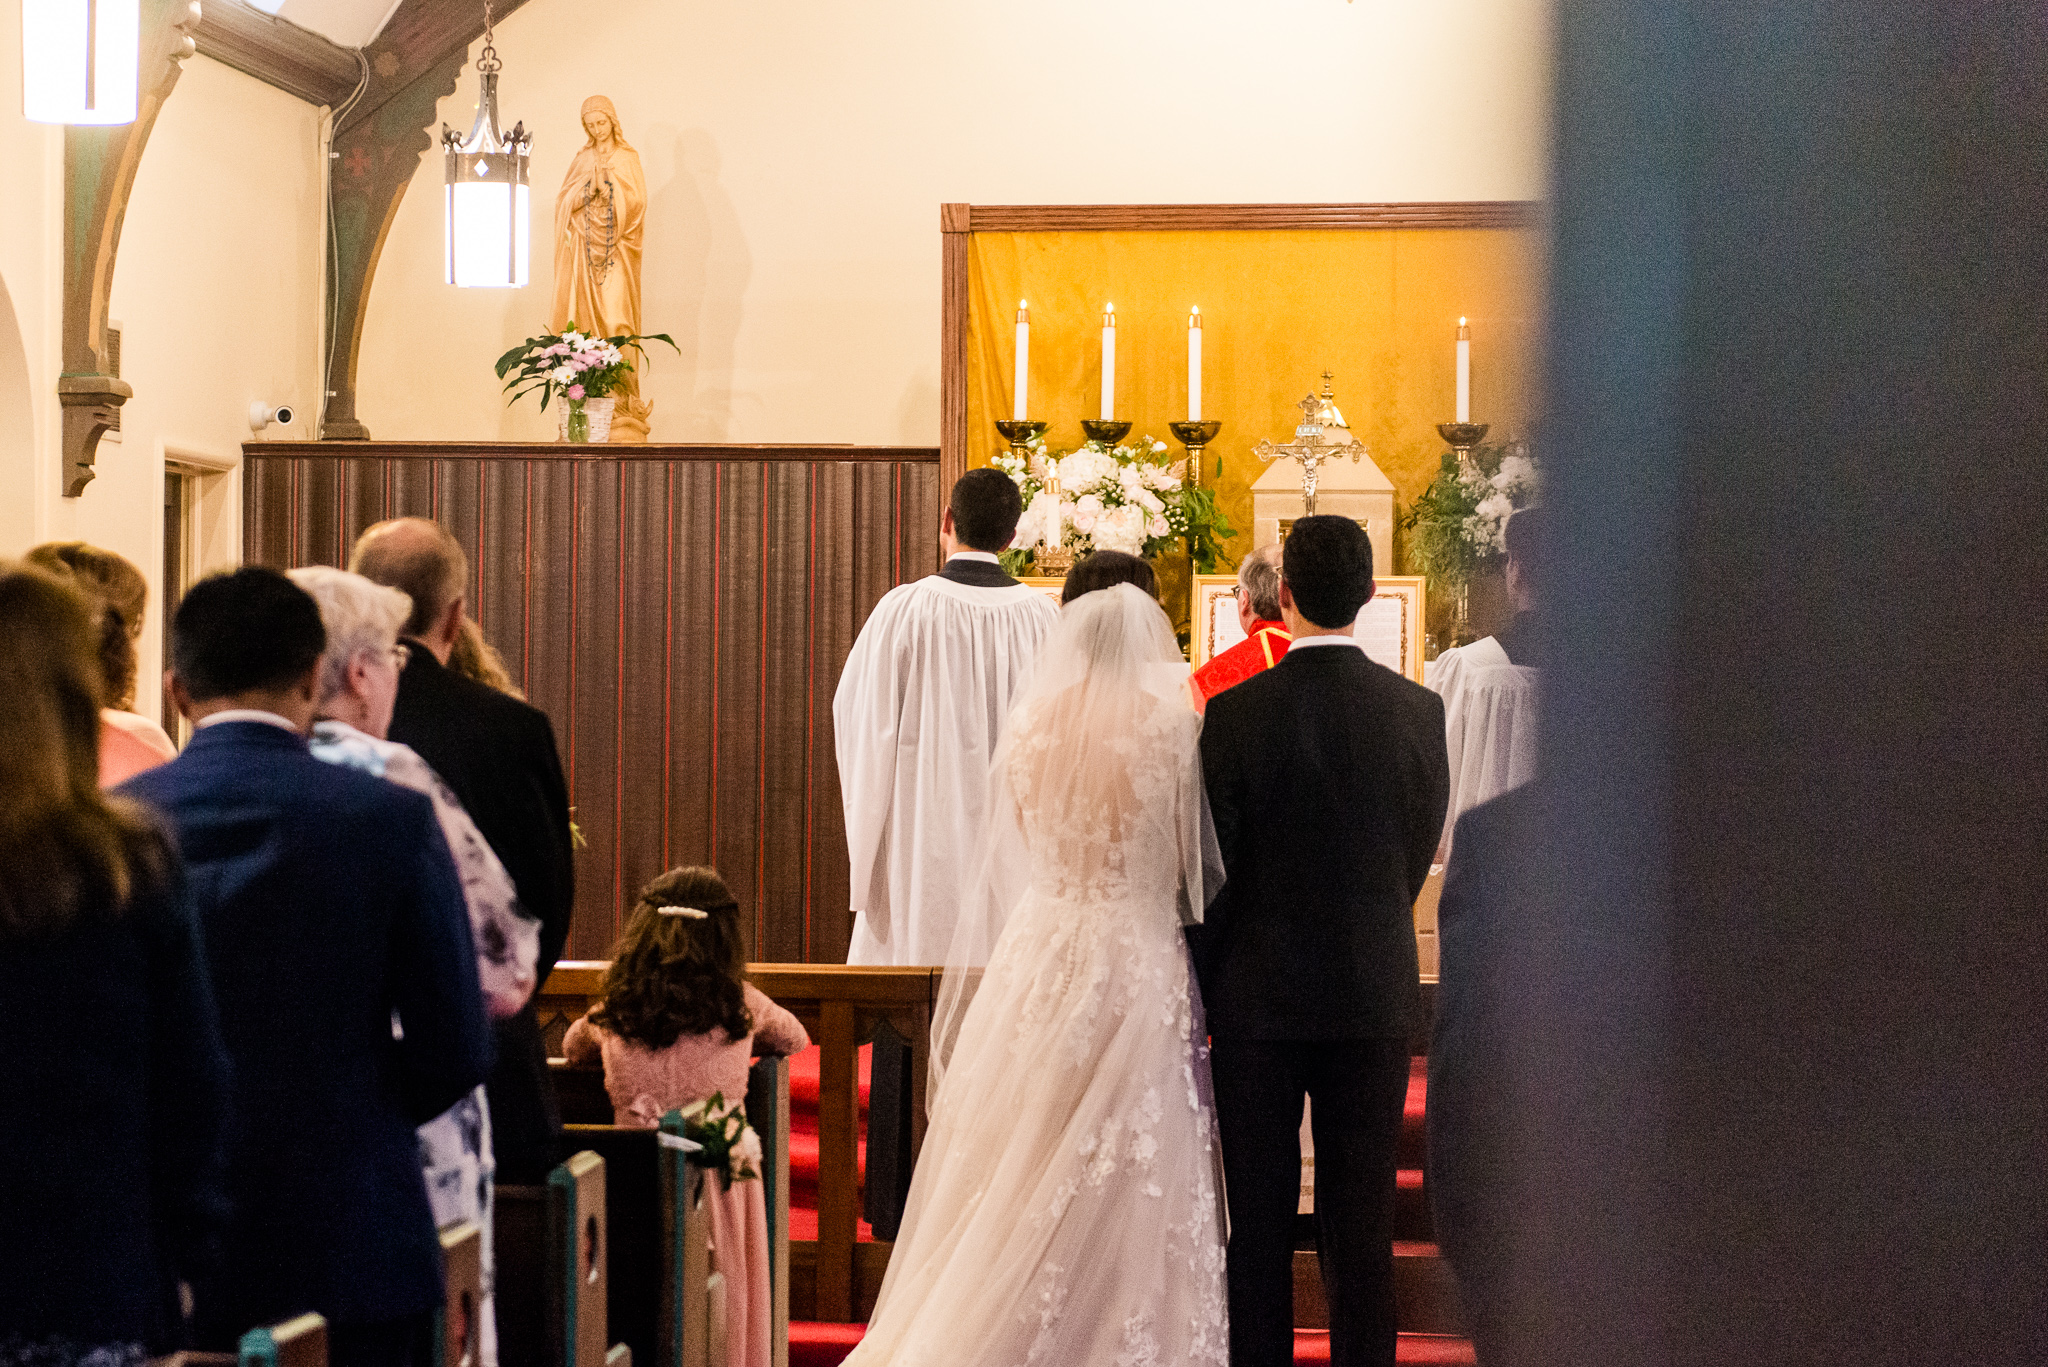 A bride and groom stand and reflect upon the Ave Maria being sung before a statue of Mary during a Catholic wedding ceremony at the Chapel of Immaculate Conception in Leesburg, Northern Virginia